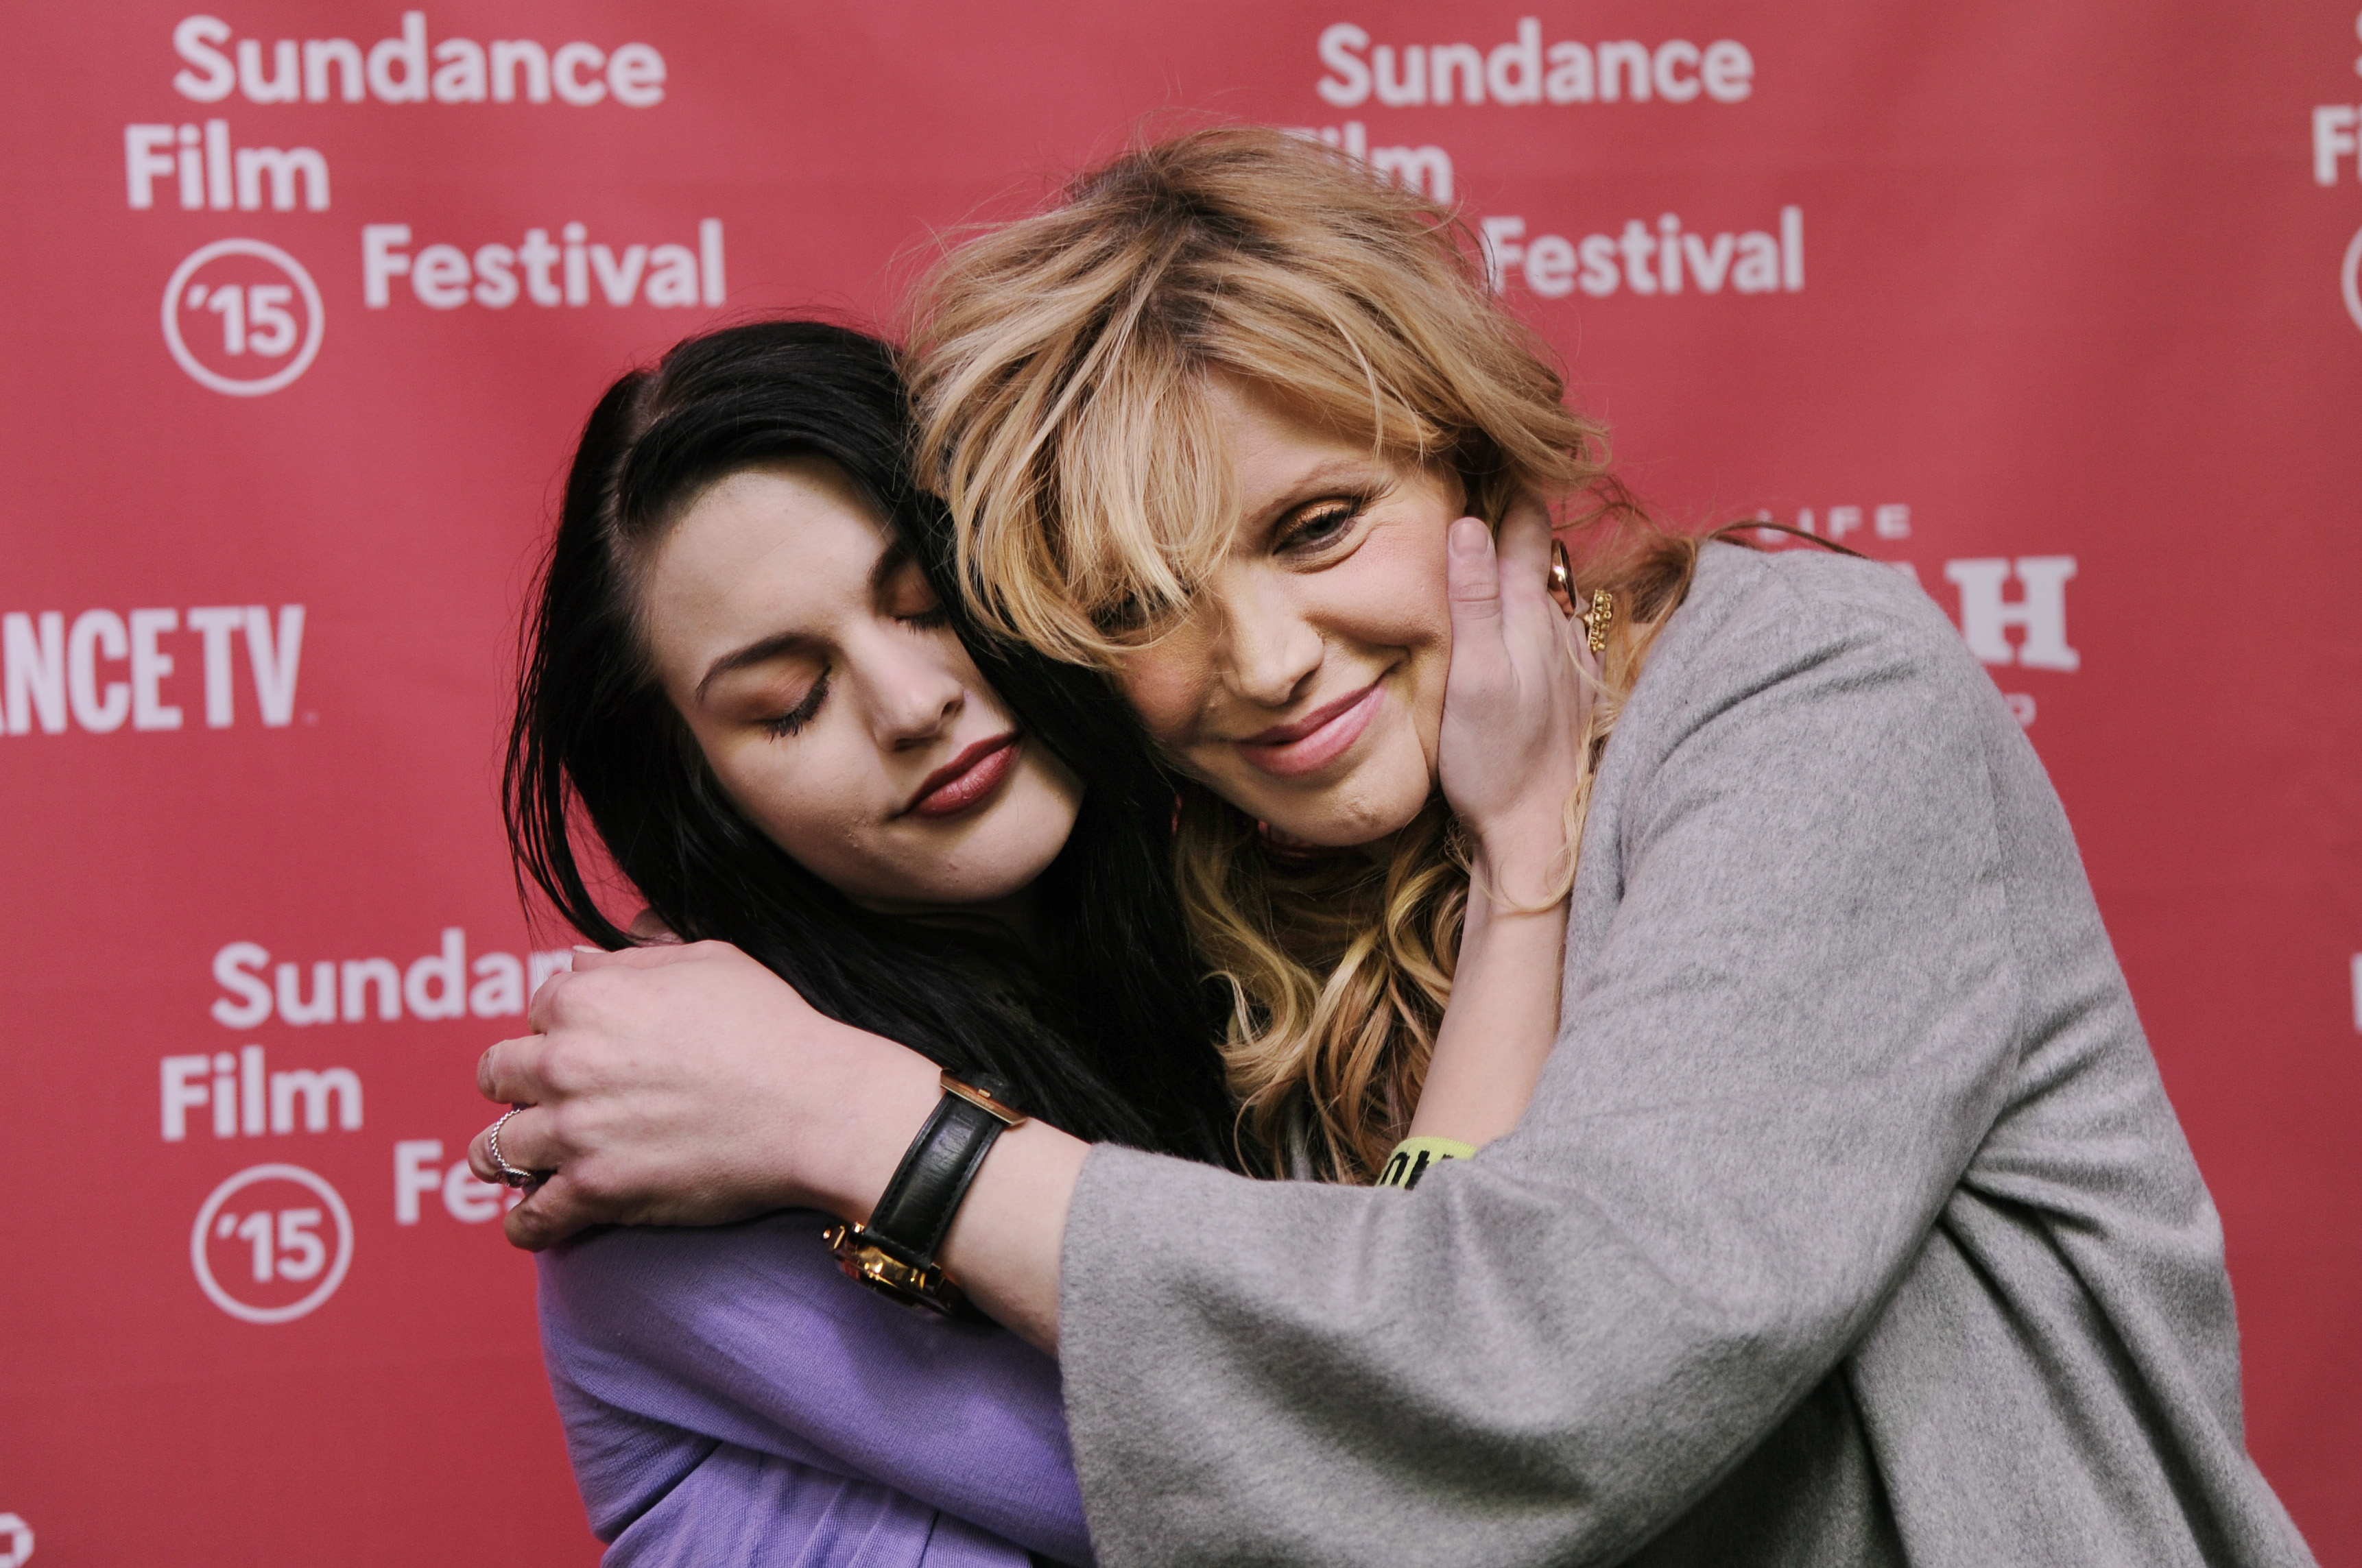 Courtney Love, Frances Bean appear together at Sundance